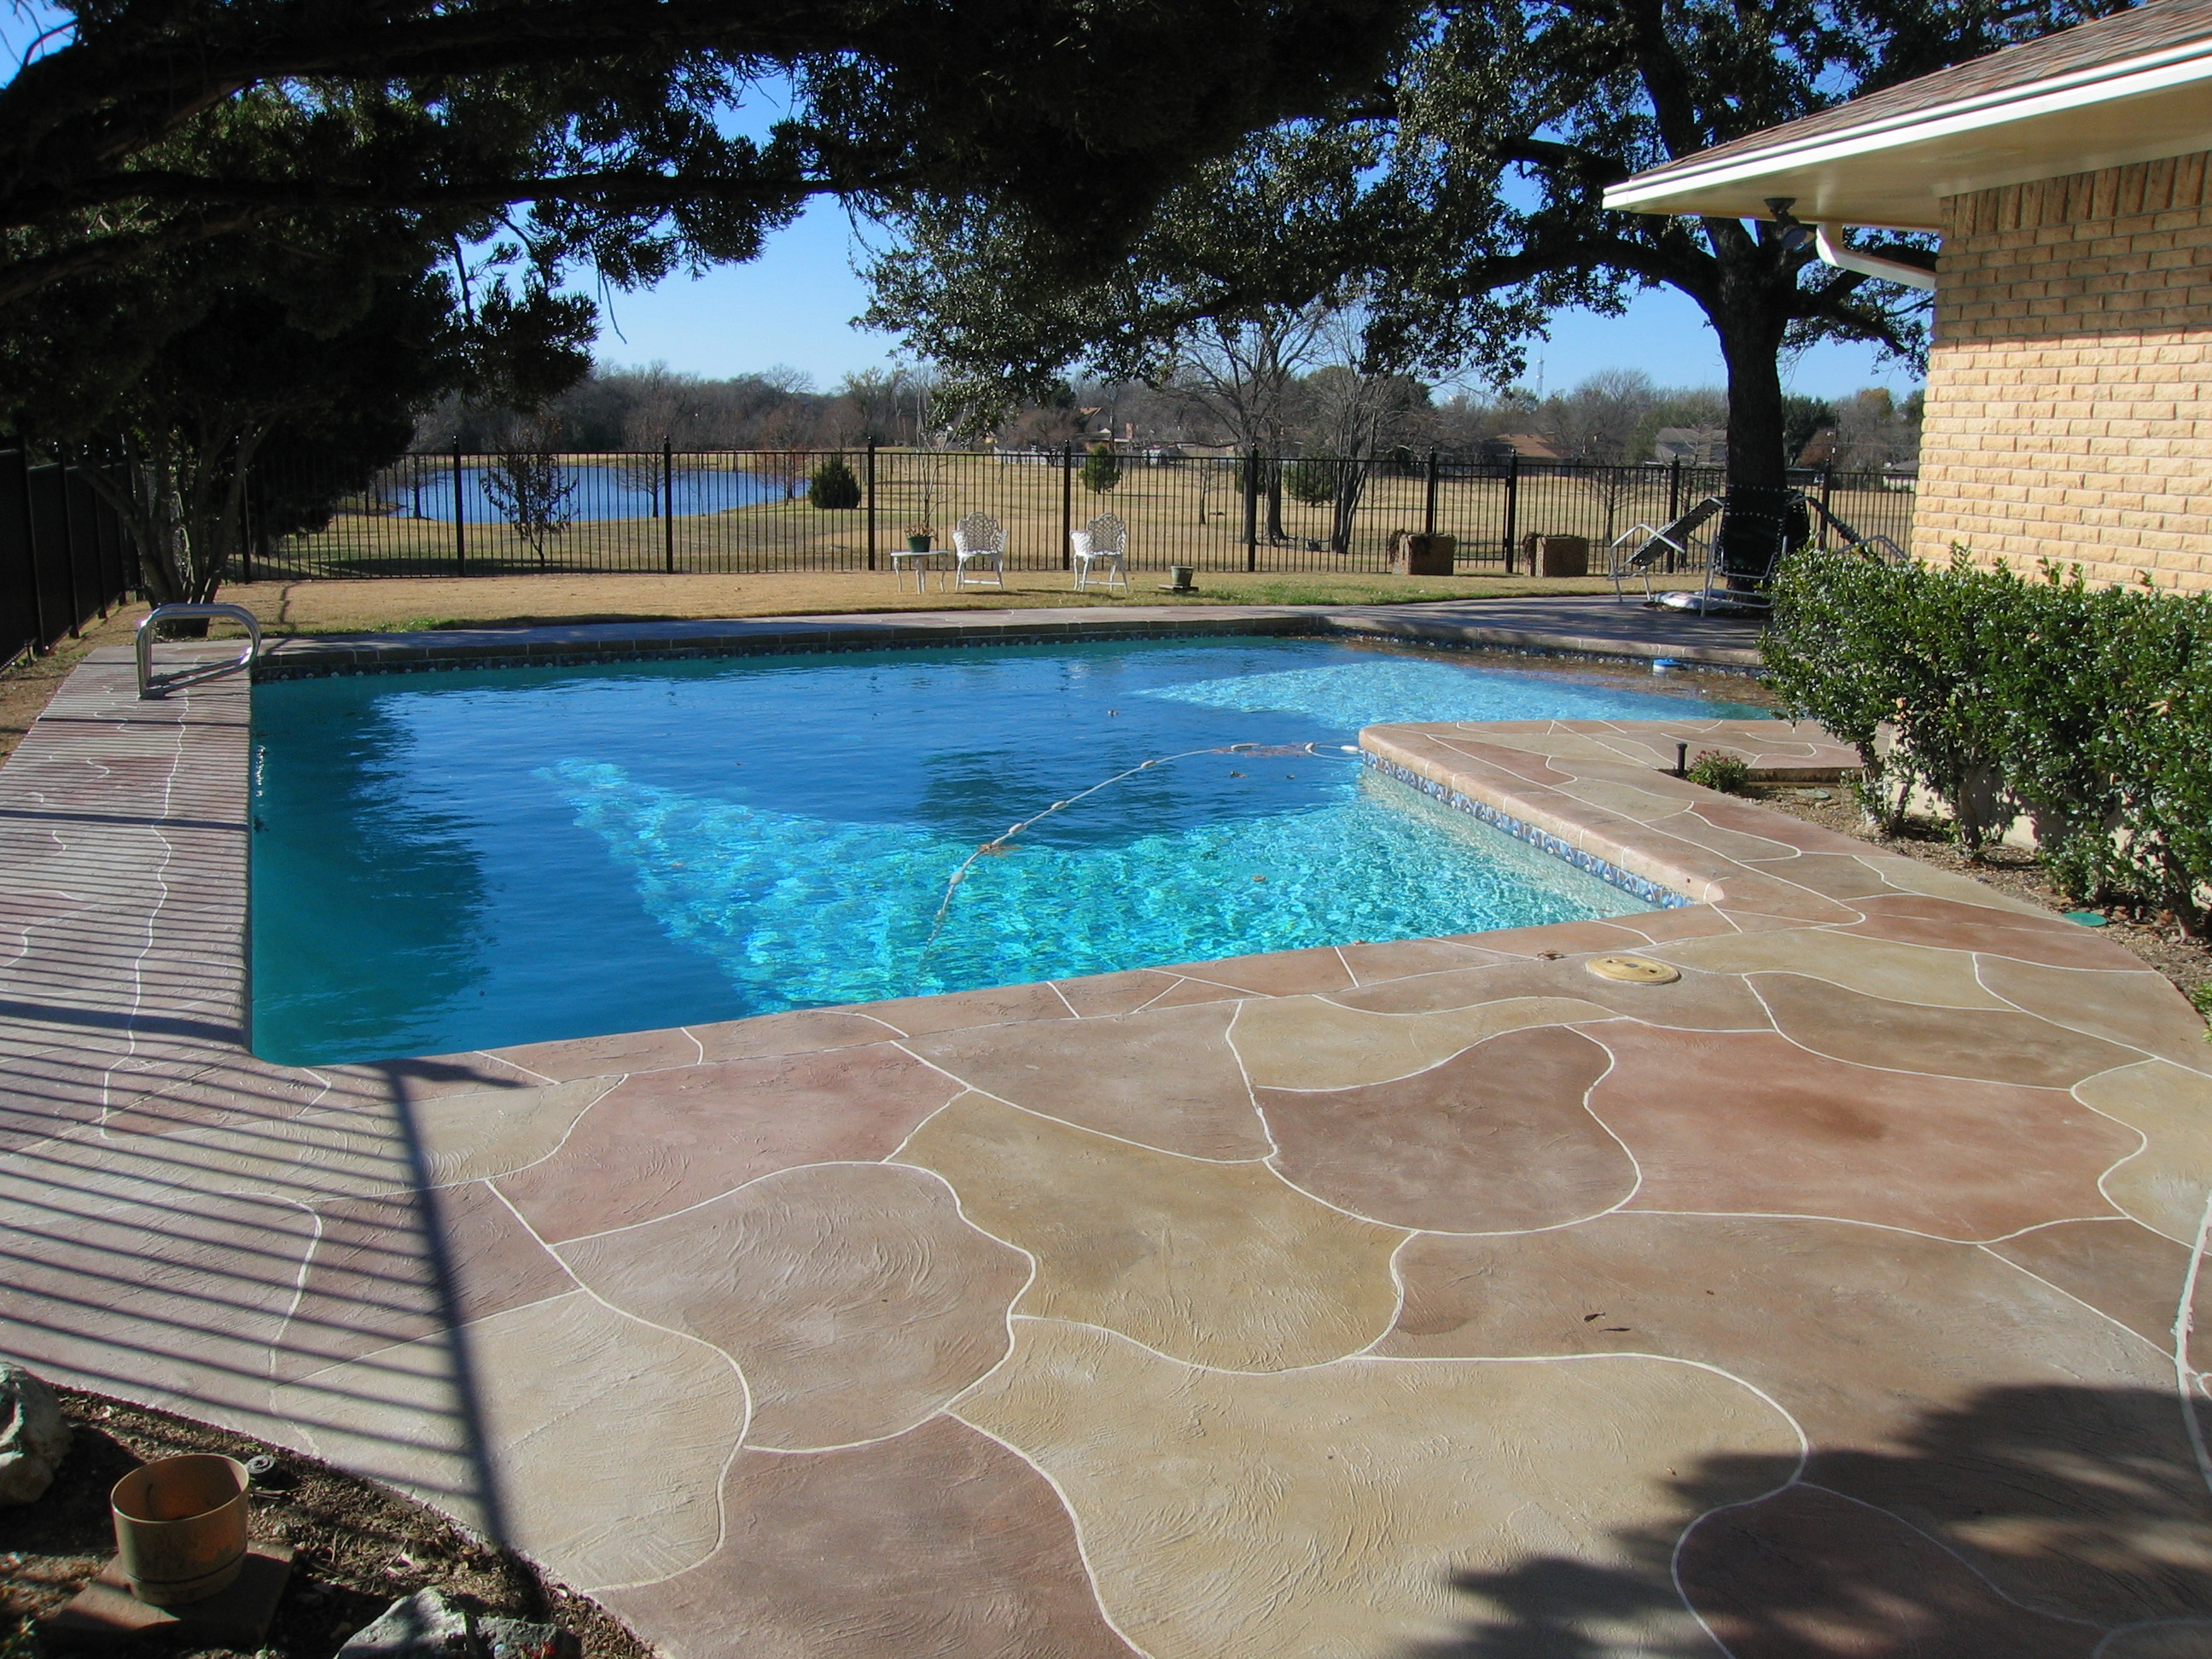 Stamped concrete pool patio designs ideas for stamped concrete around pool with luxury stamped concrete patterns